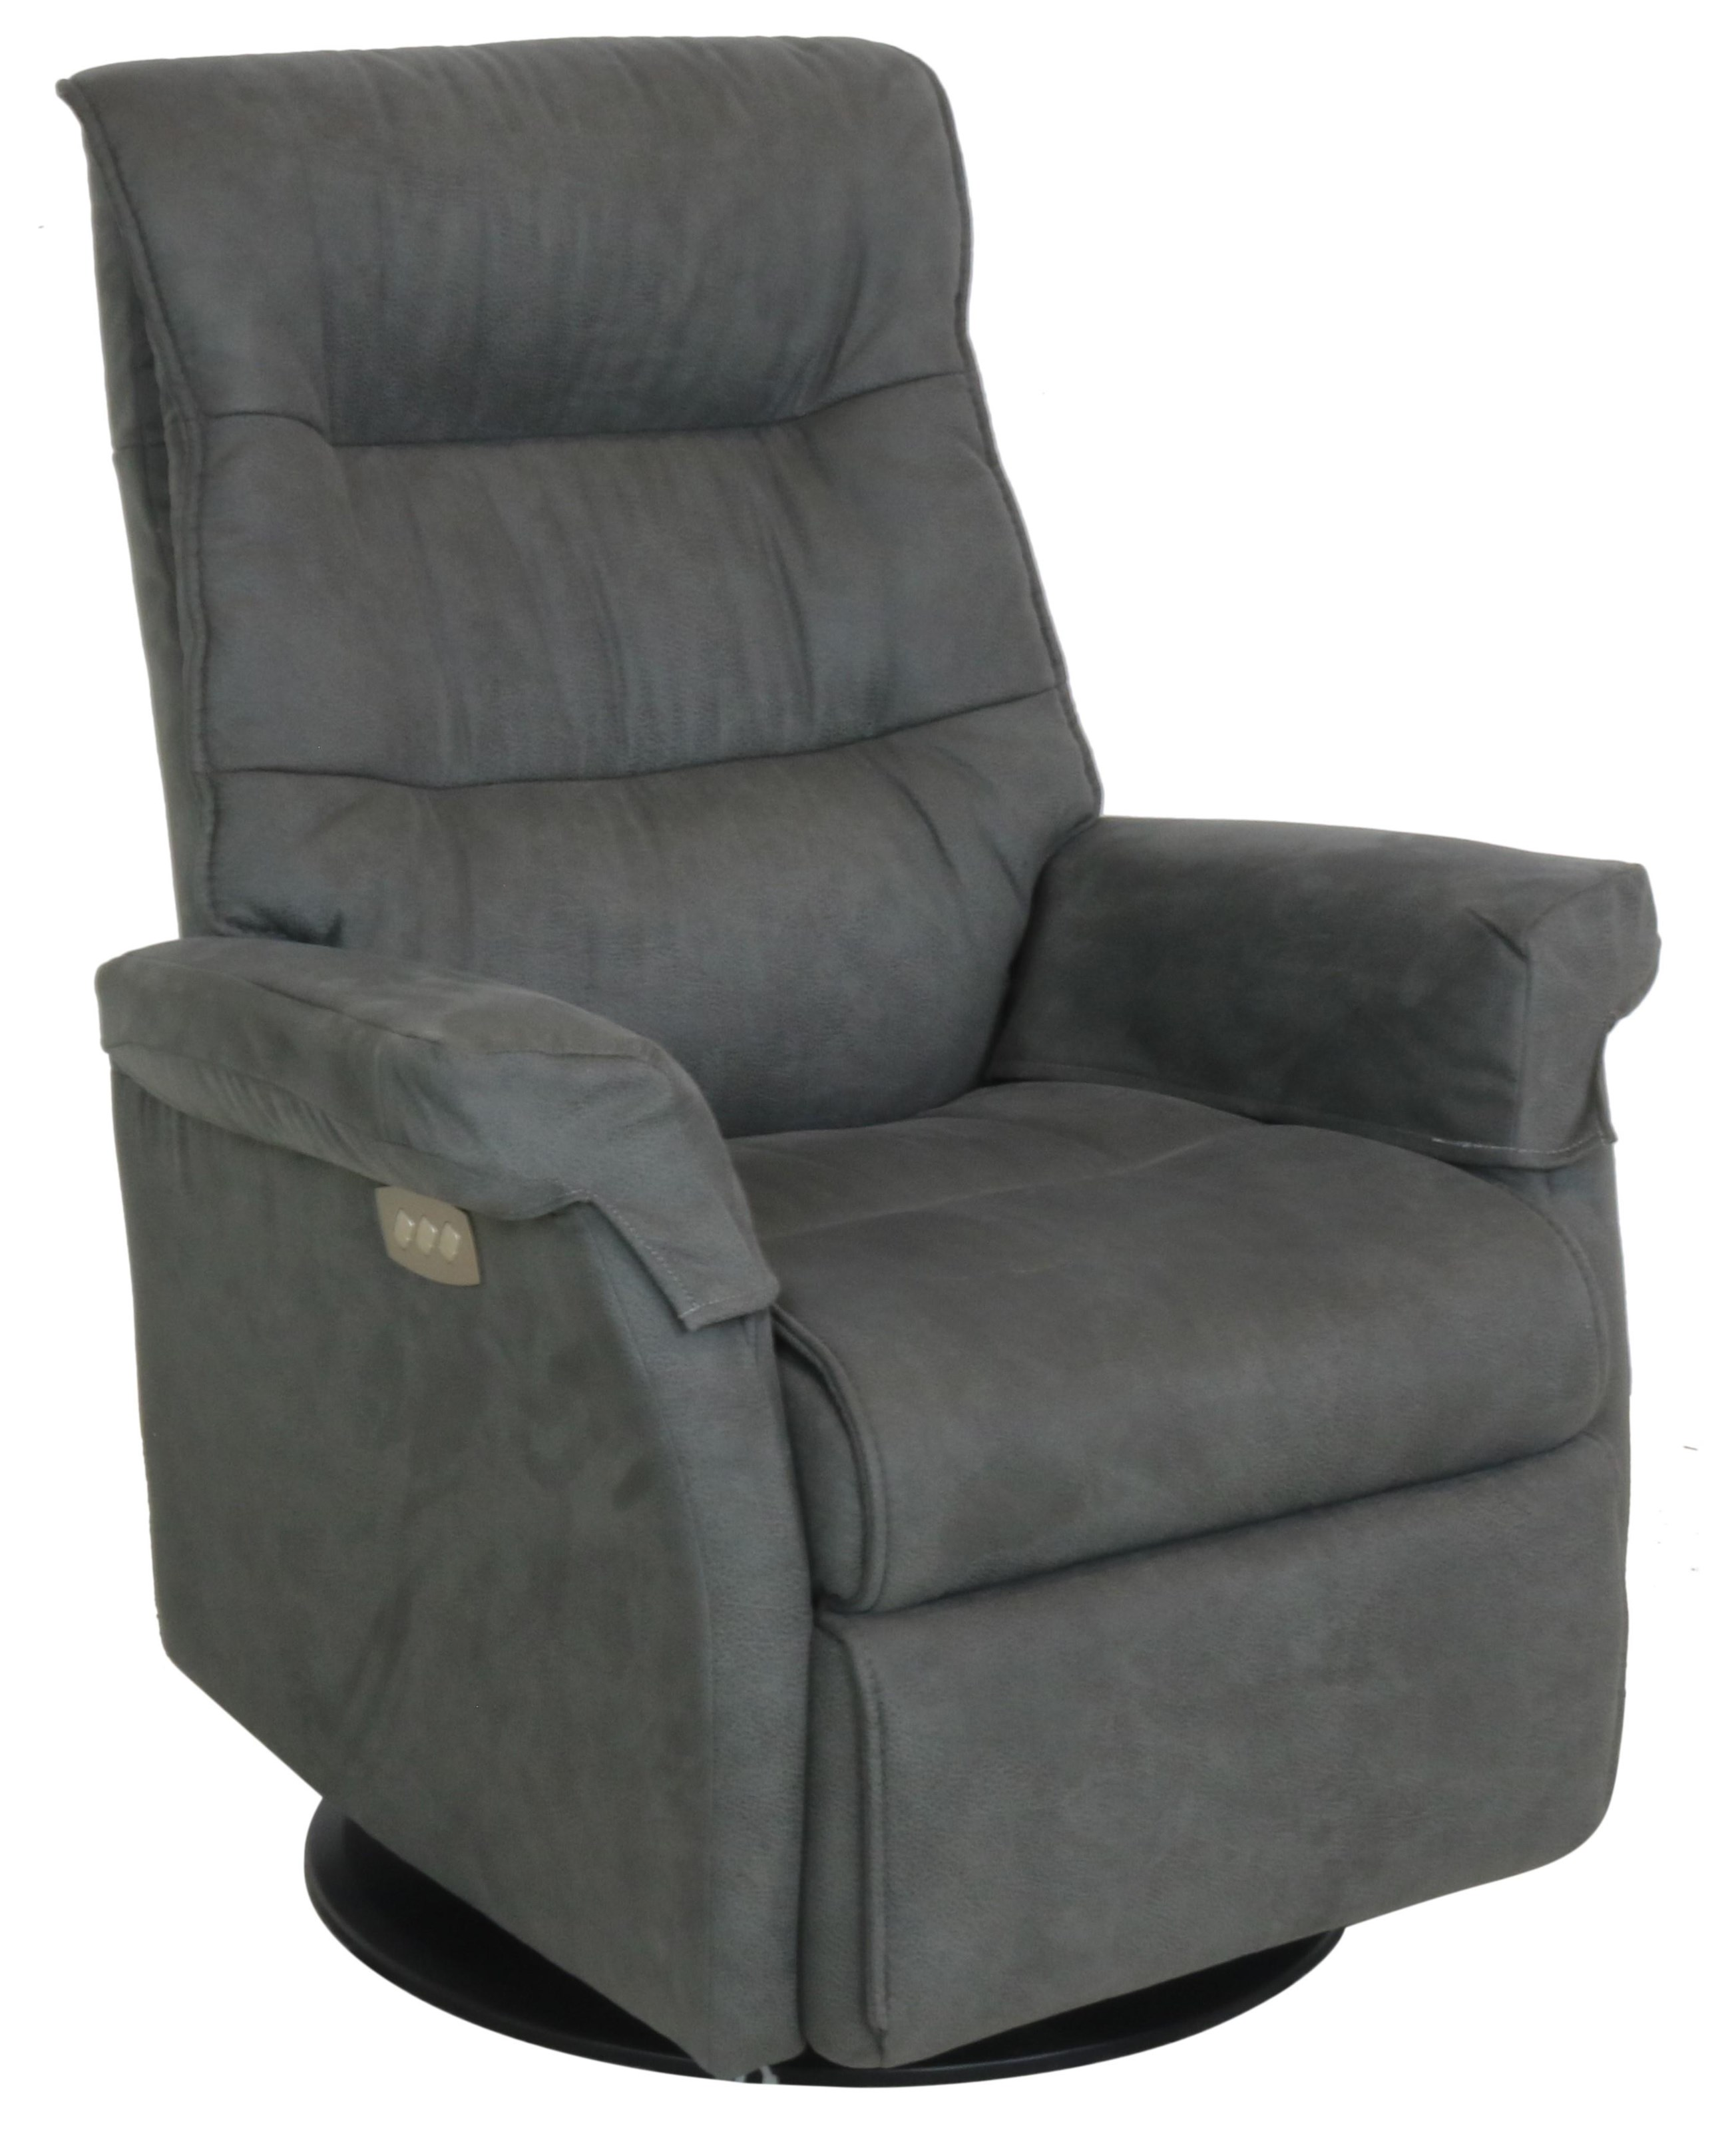 Recliners Chelsea Recliner by IMG Norway at Sprintz Furniture